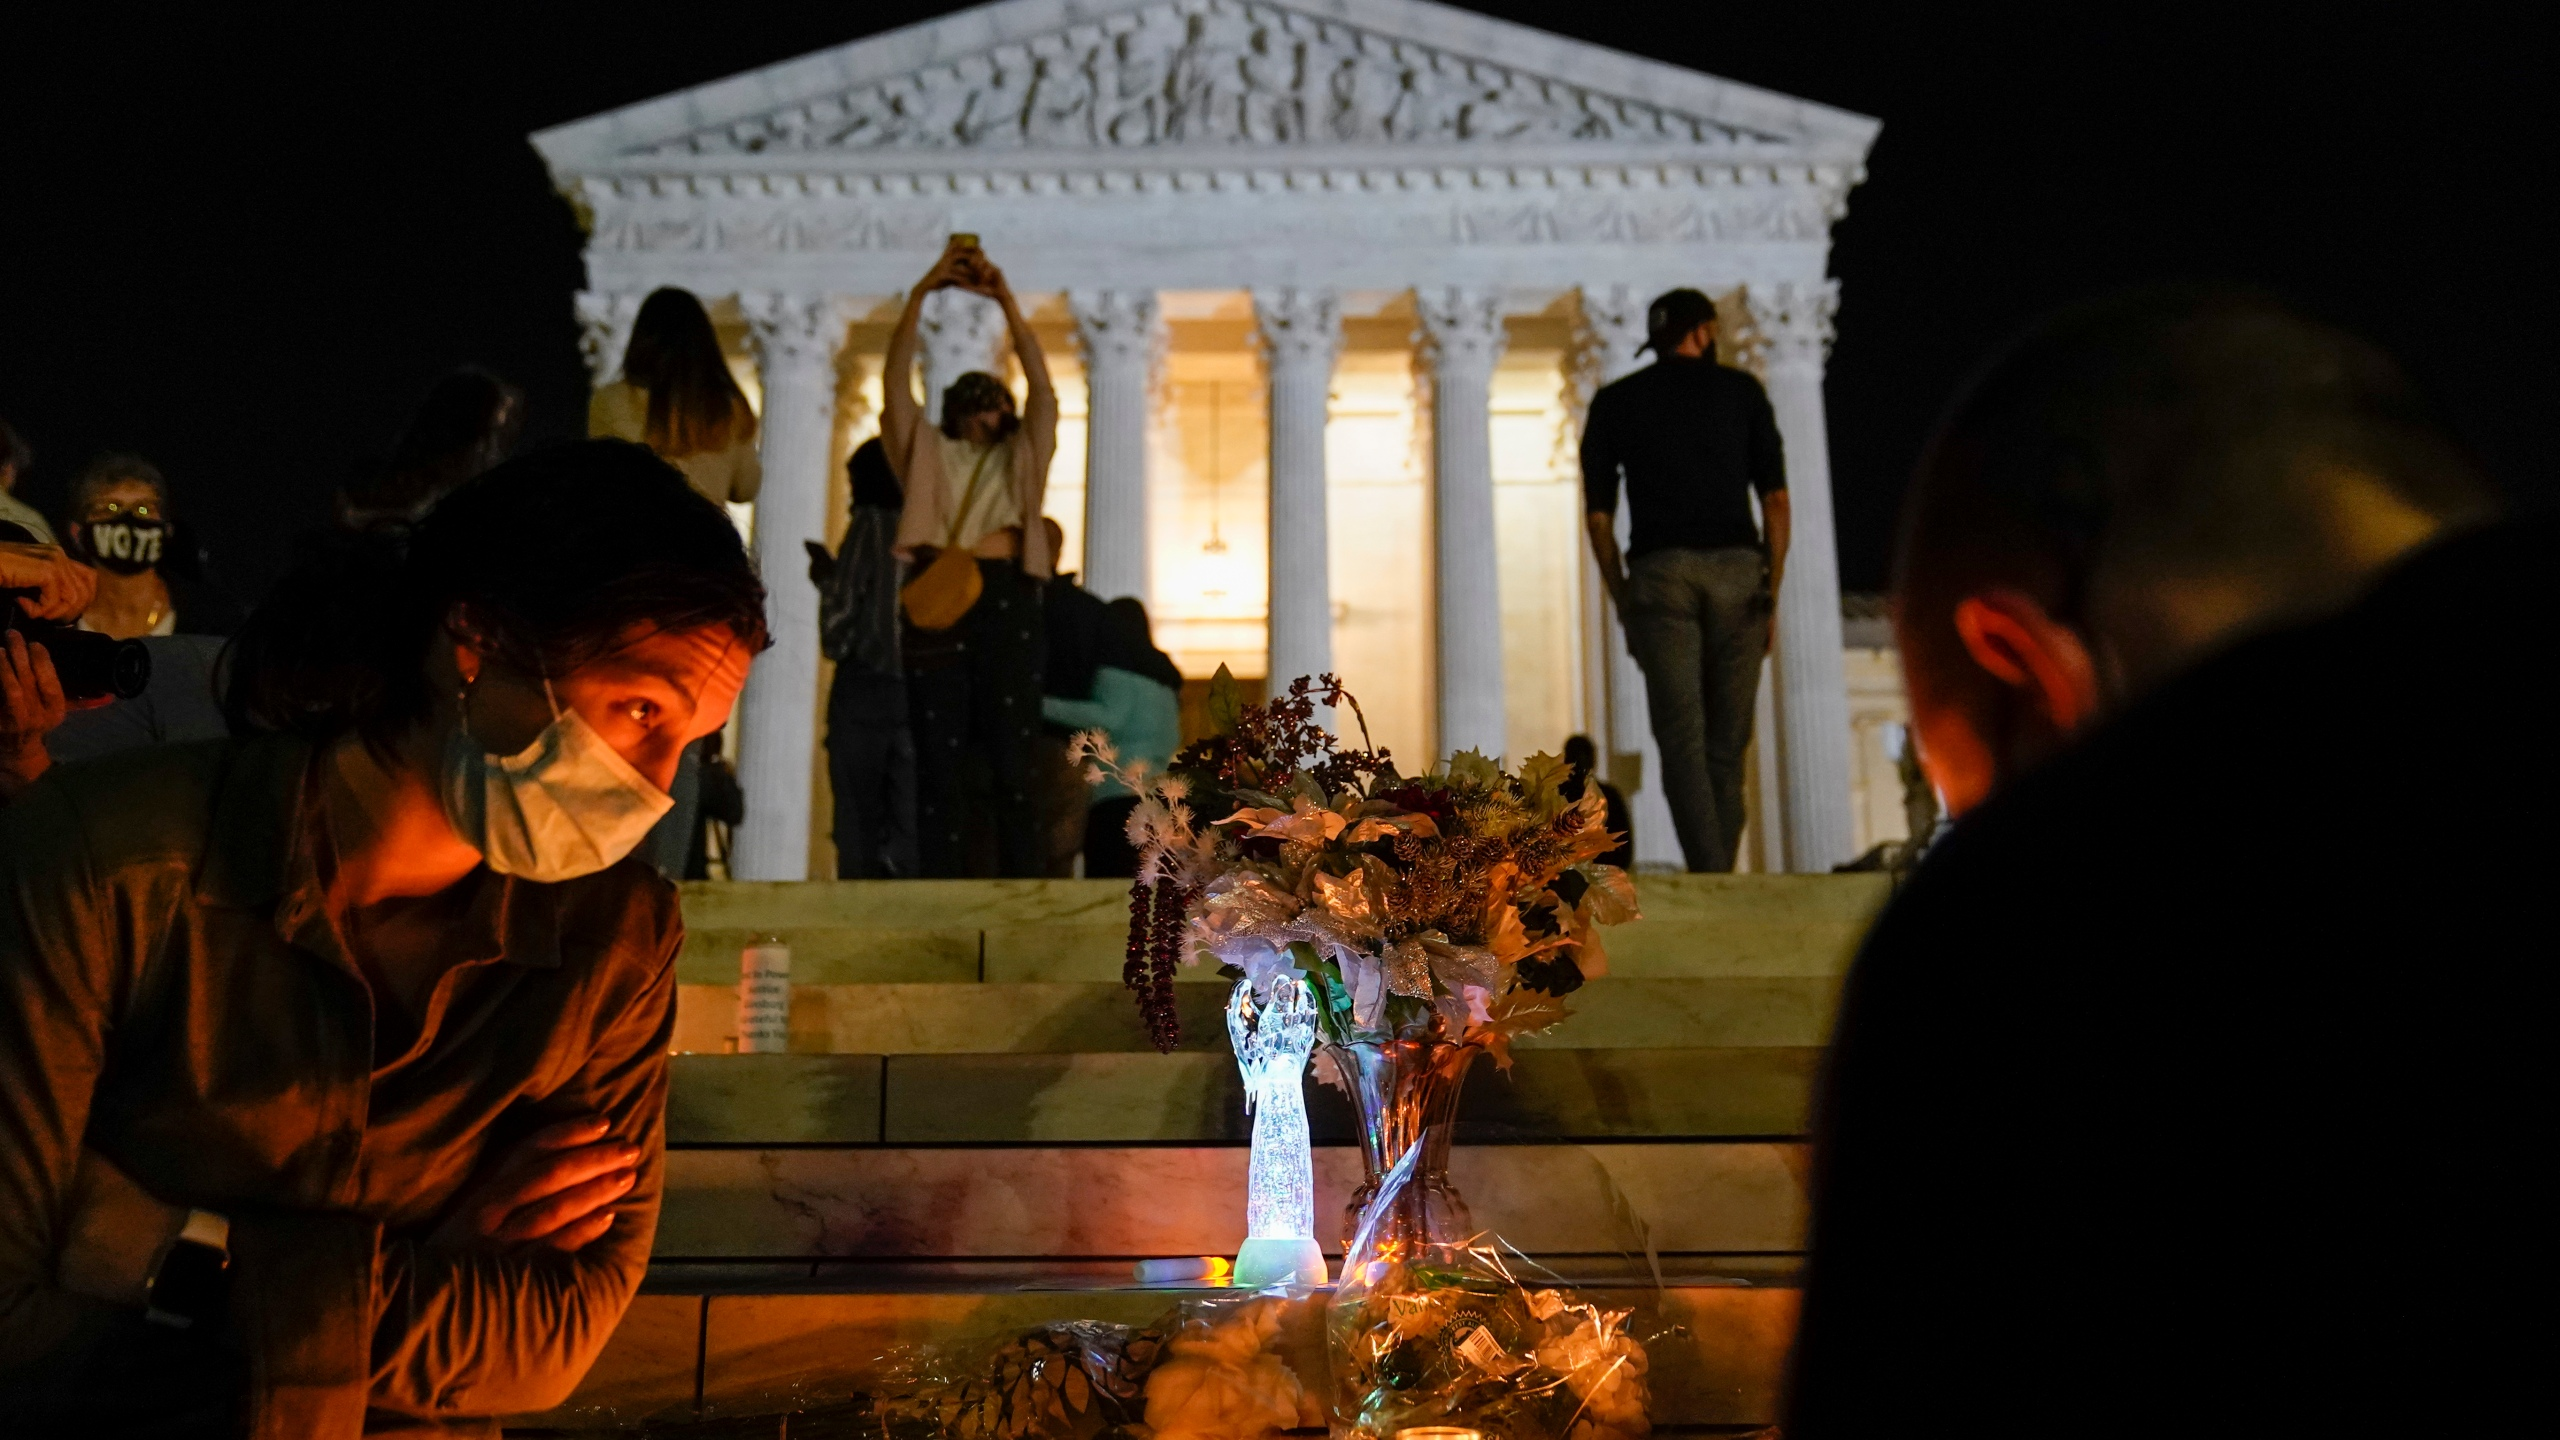 People gather at the Supreme Court on Sept. 18, 2020, after the court announced that Justice Ruth Bader Ginsburg died of metastatic pancreatic cancer at age 87. (Alex Brandon / Associated Press)